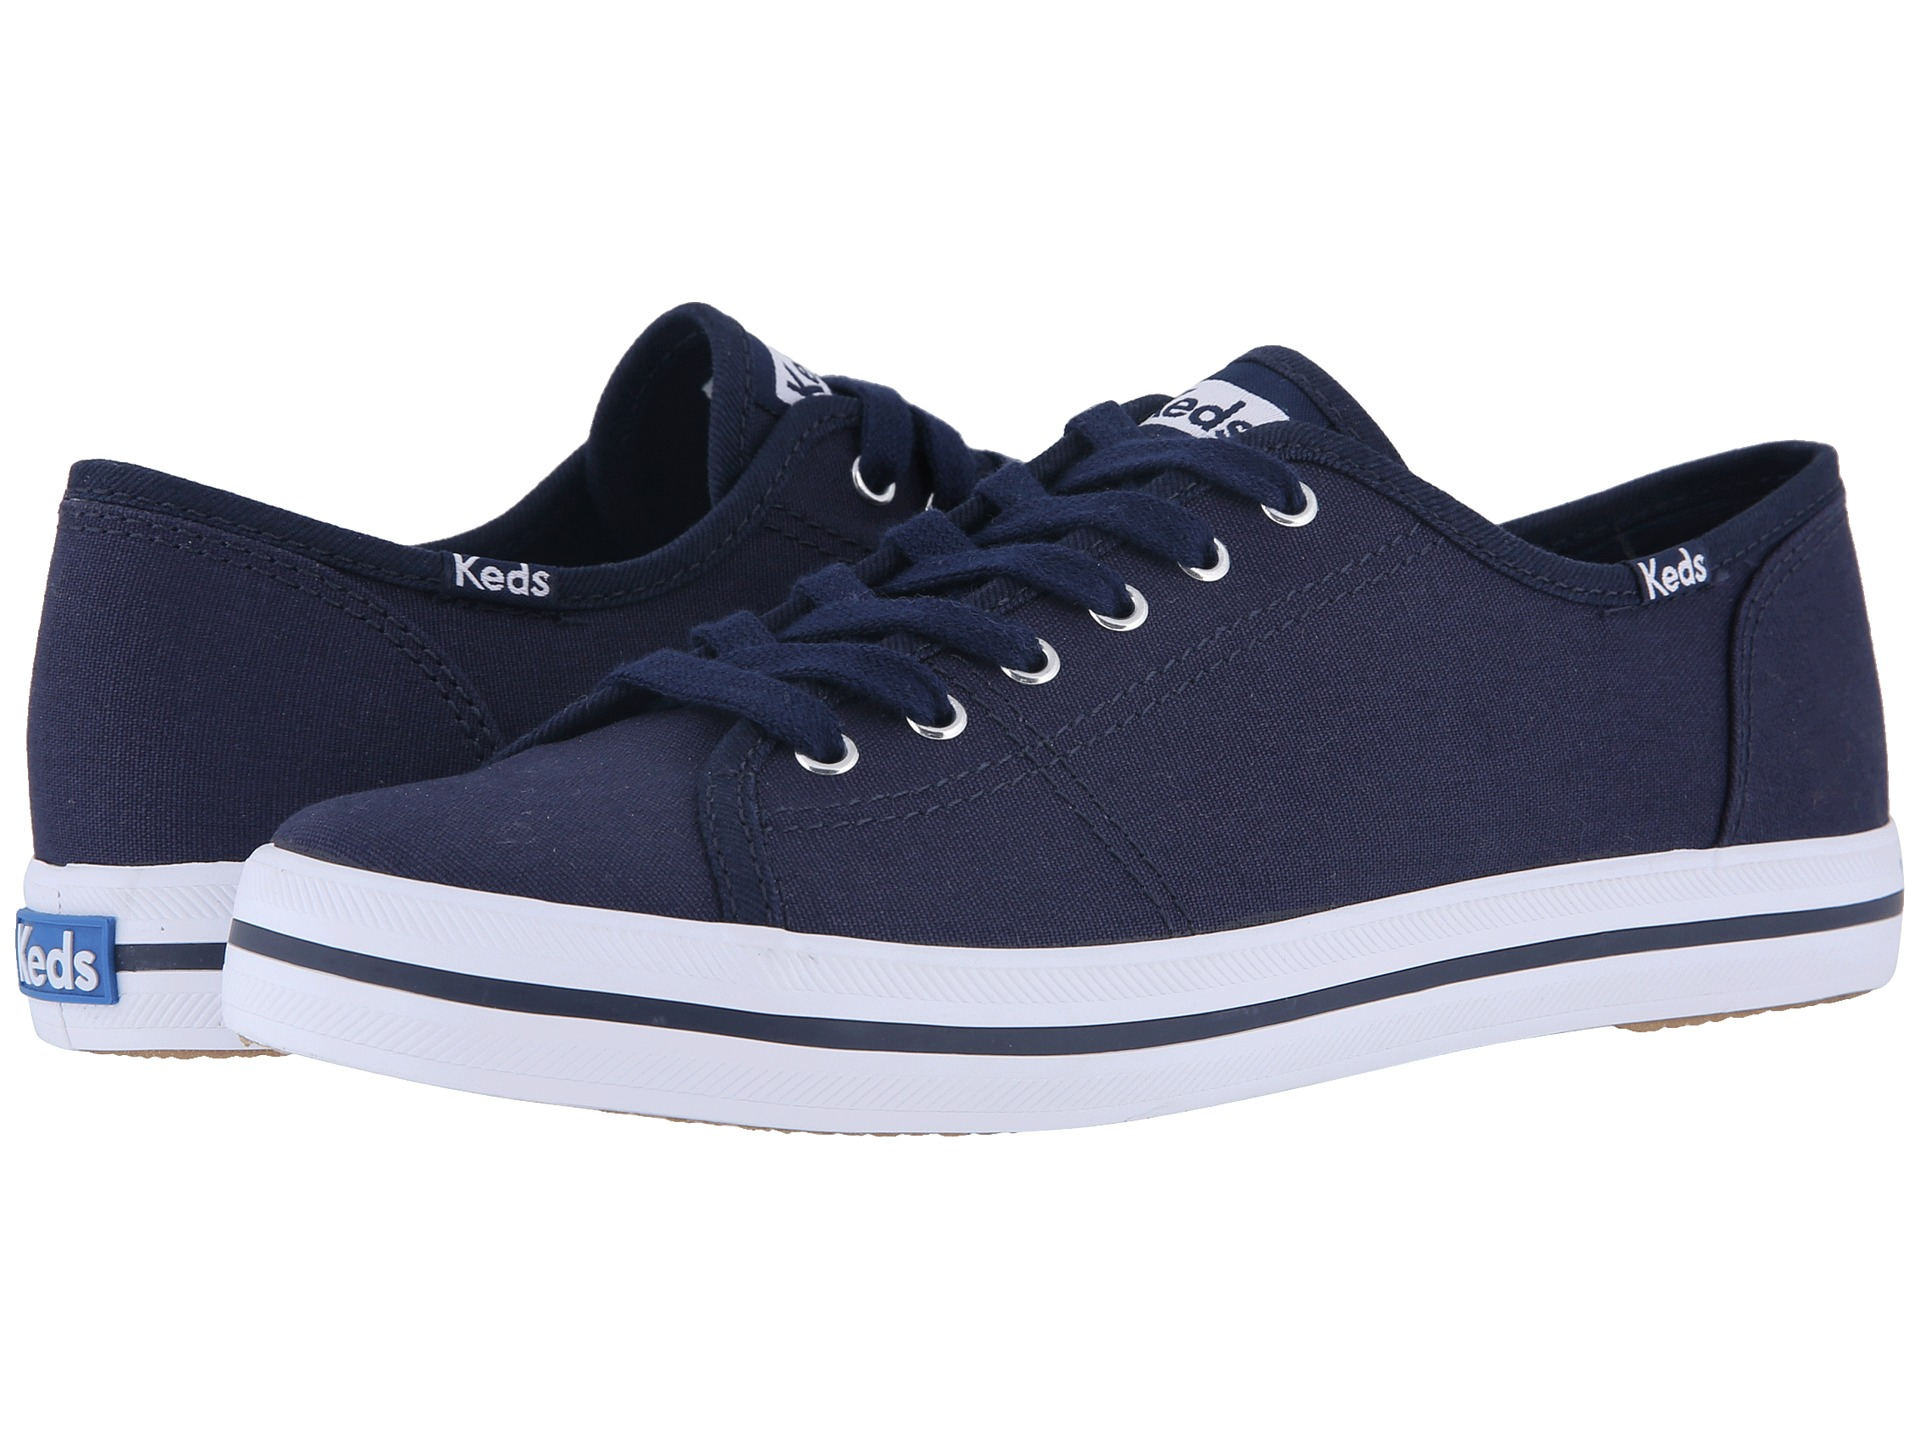 Keds Shoes Girls Size   Or